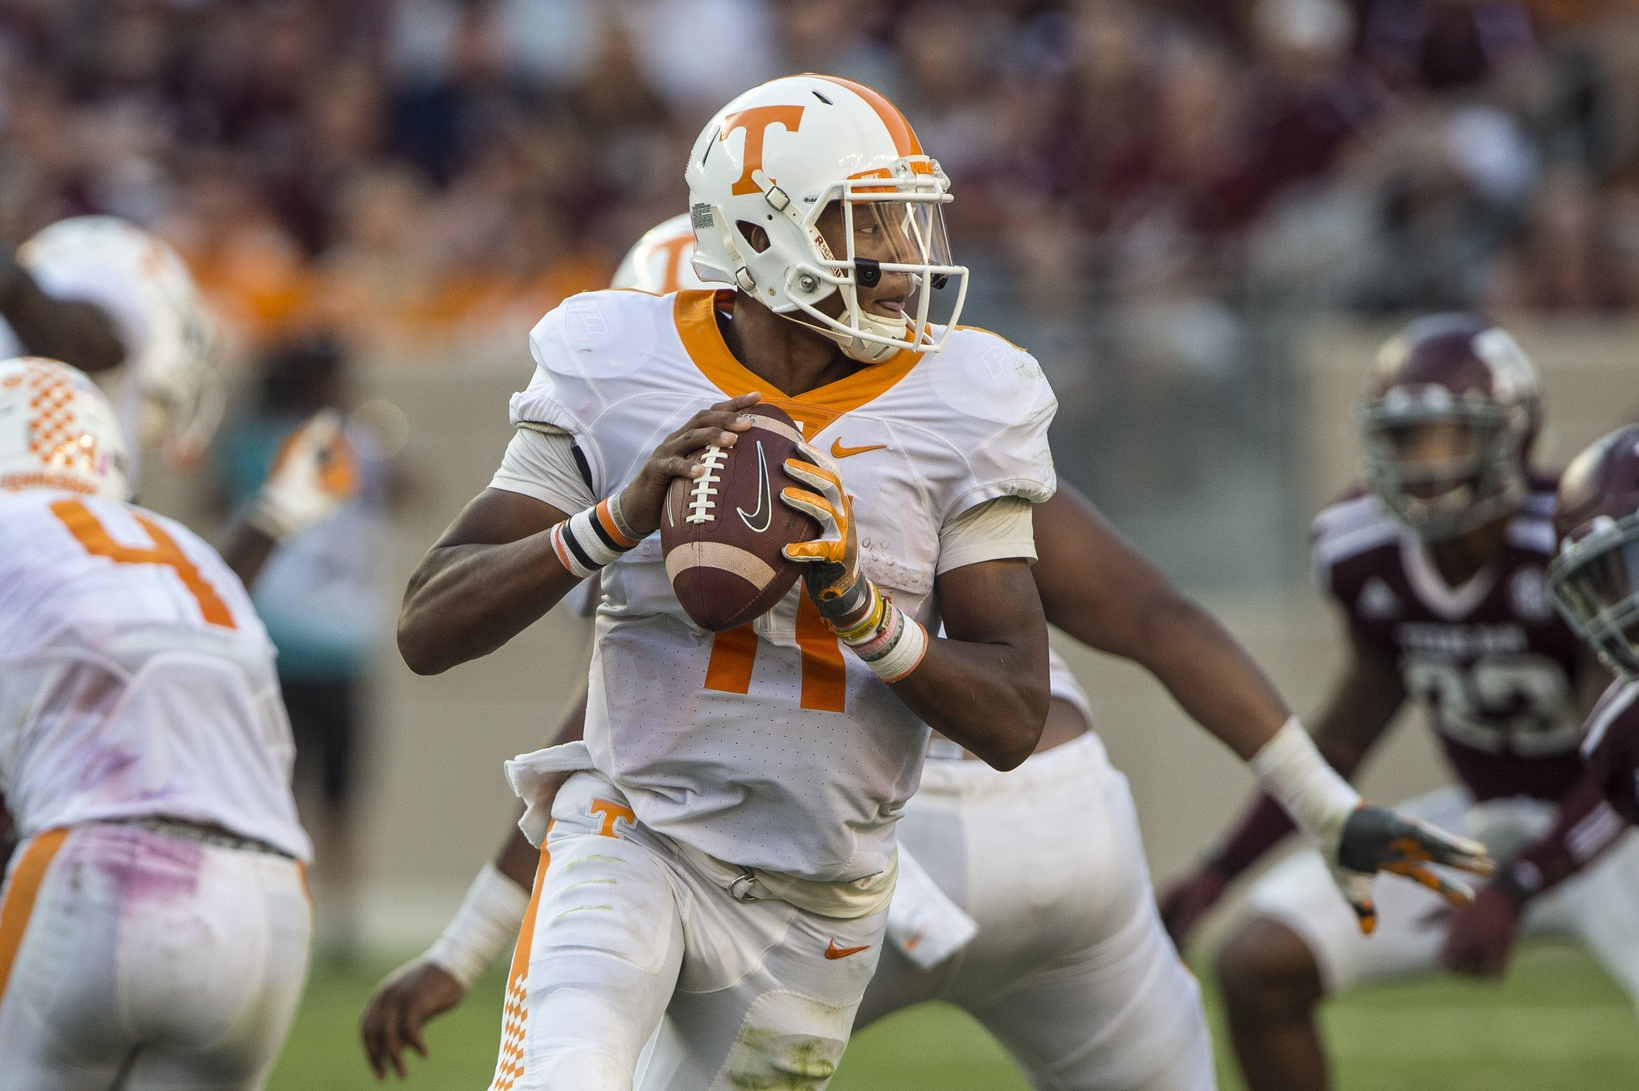 Oct 8, 2016; College Station, TX, USA; Tennessee Volunteers quarterback Joshua Dobbs (11) rolls out to pass against the Texas A&M Aggies during the second half at Kyle Field. The Aggies defeated the Volunteers 45-38 in overtime. Mandatory Credit: Jerome Miron-USA TODAY Sports